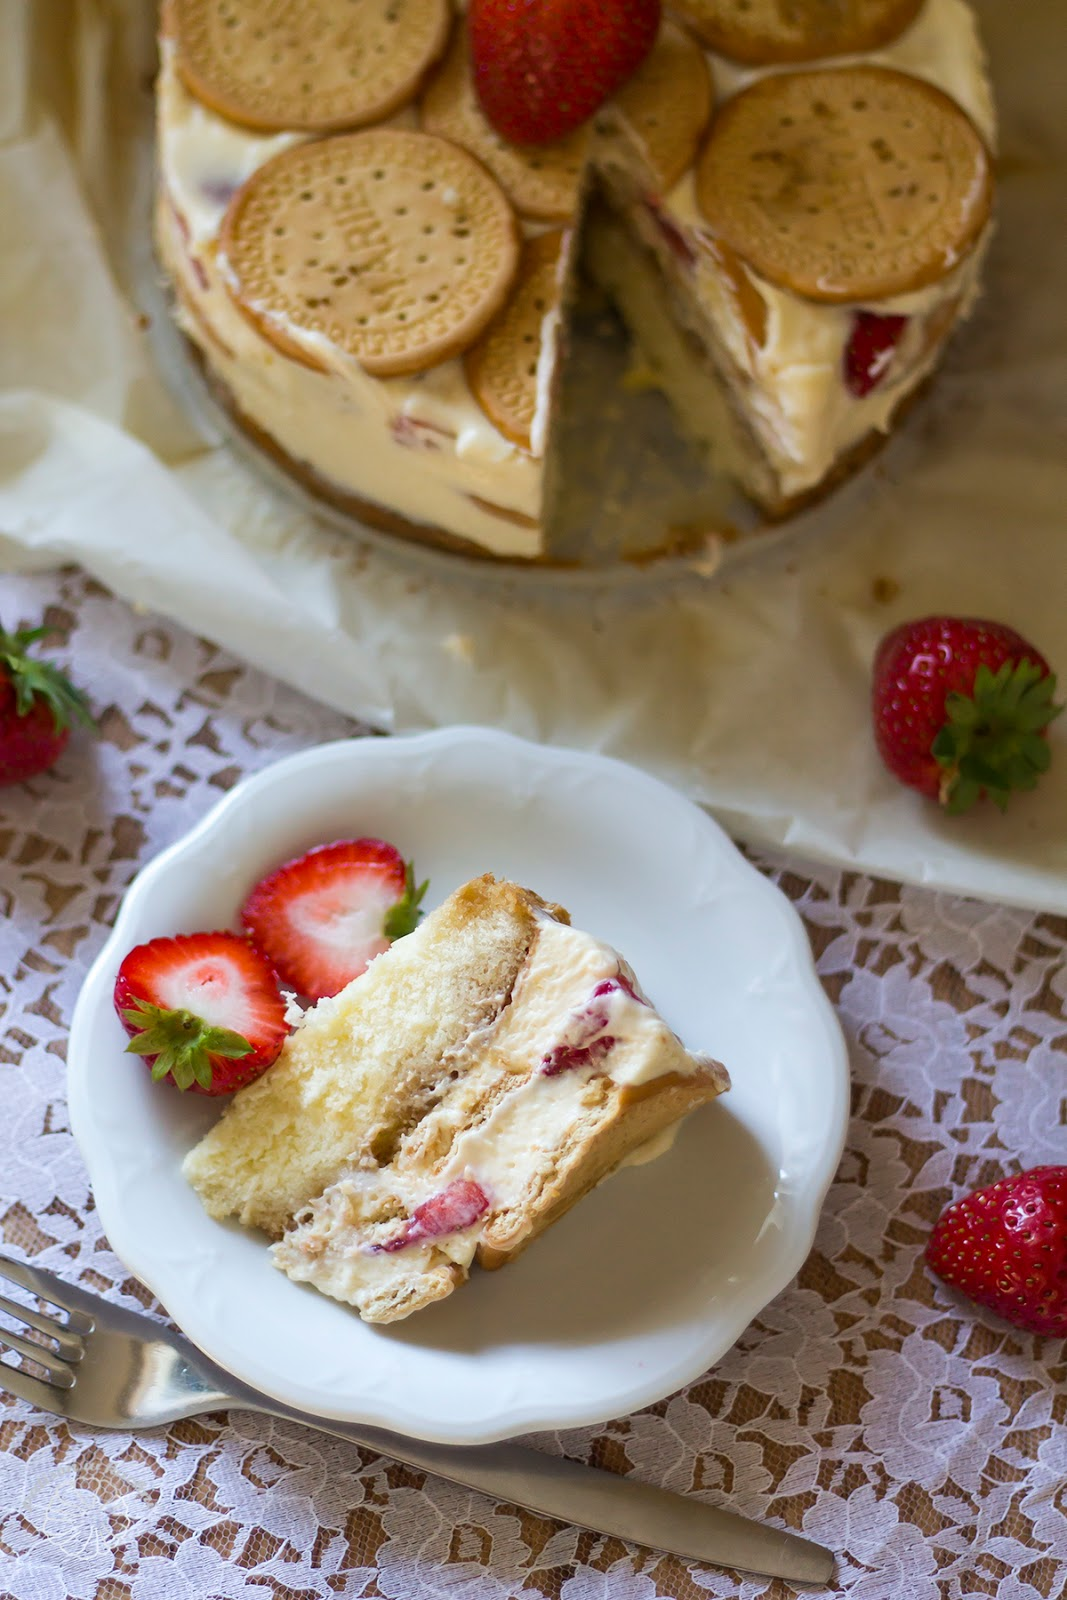 Tiramisu cake with strawberries